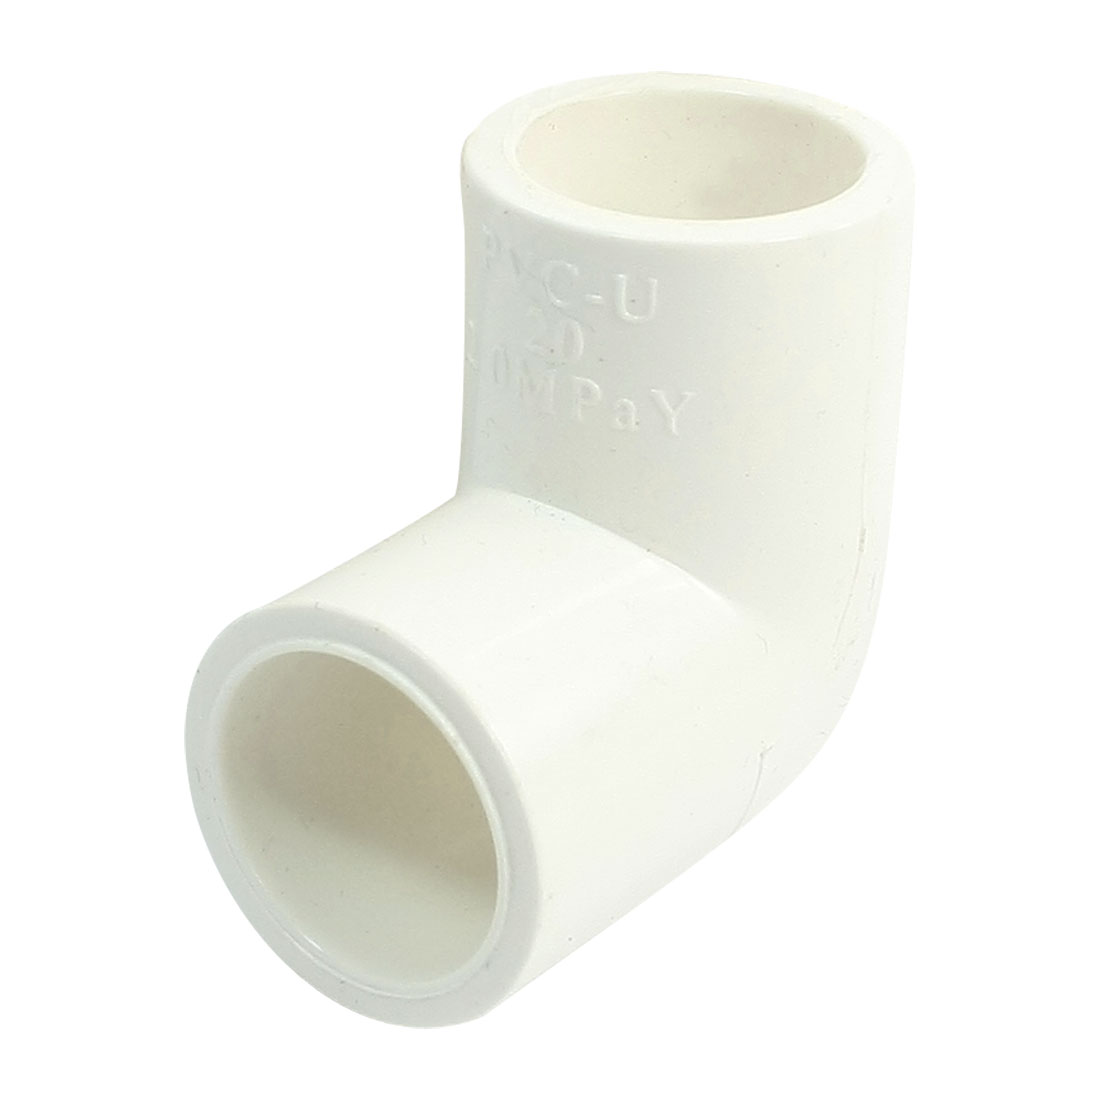 White PVC-U Pipe 90 Degree Angle Elbow Slip Connect Fitting 20mm Inner Dia